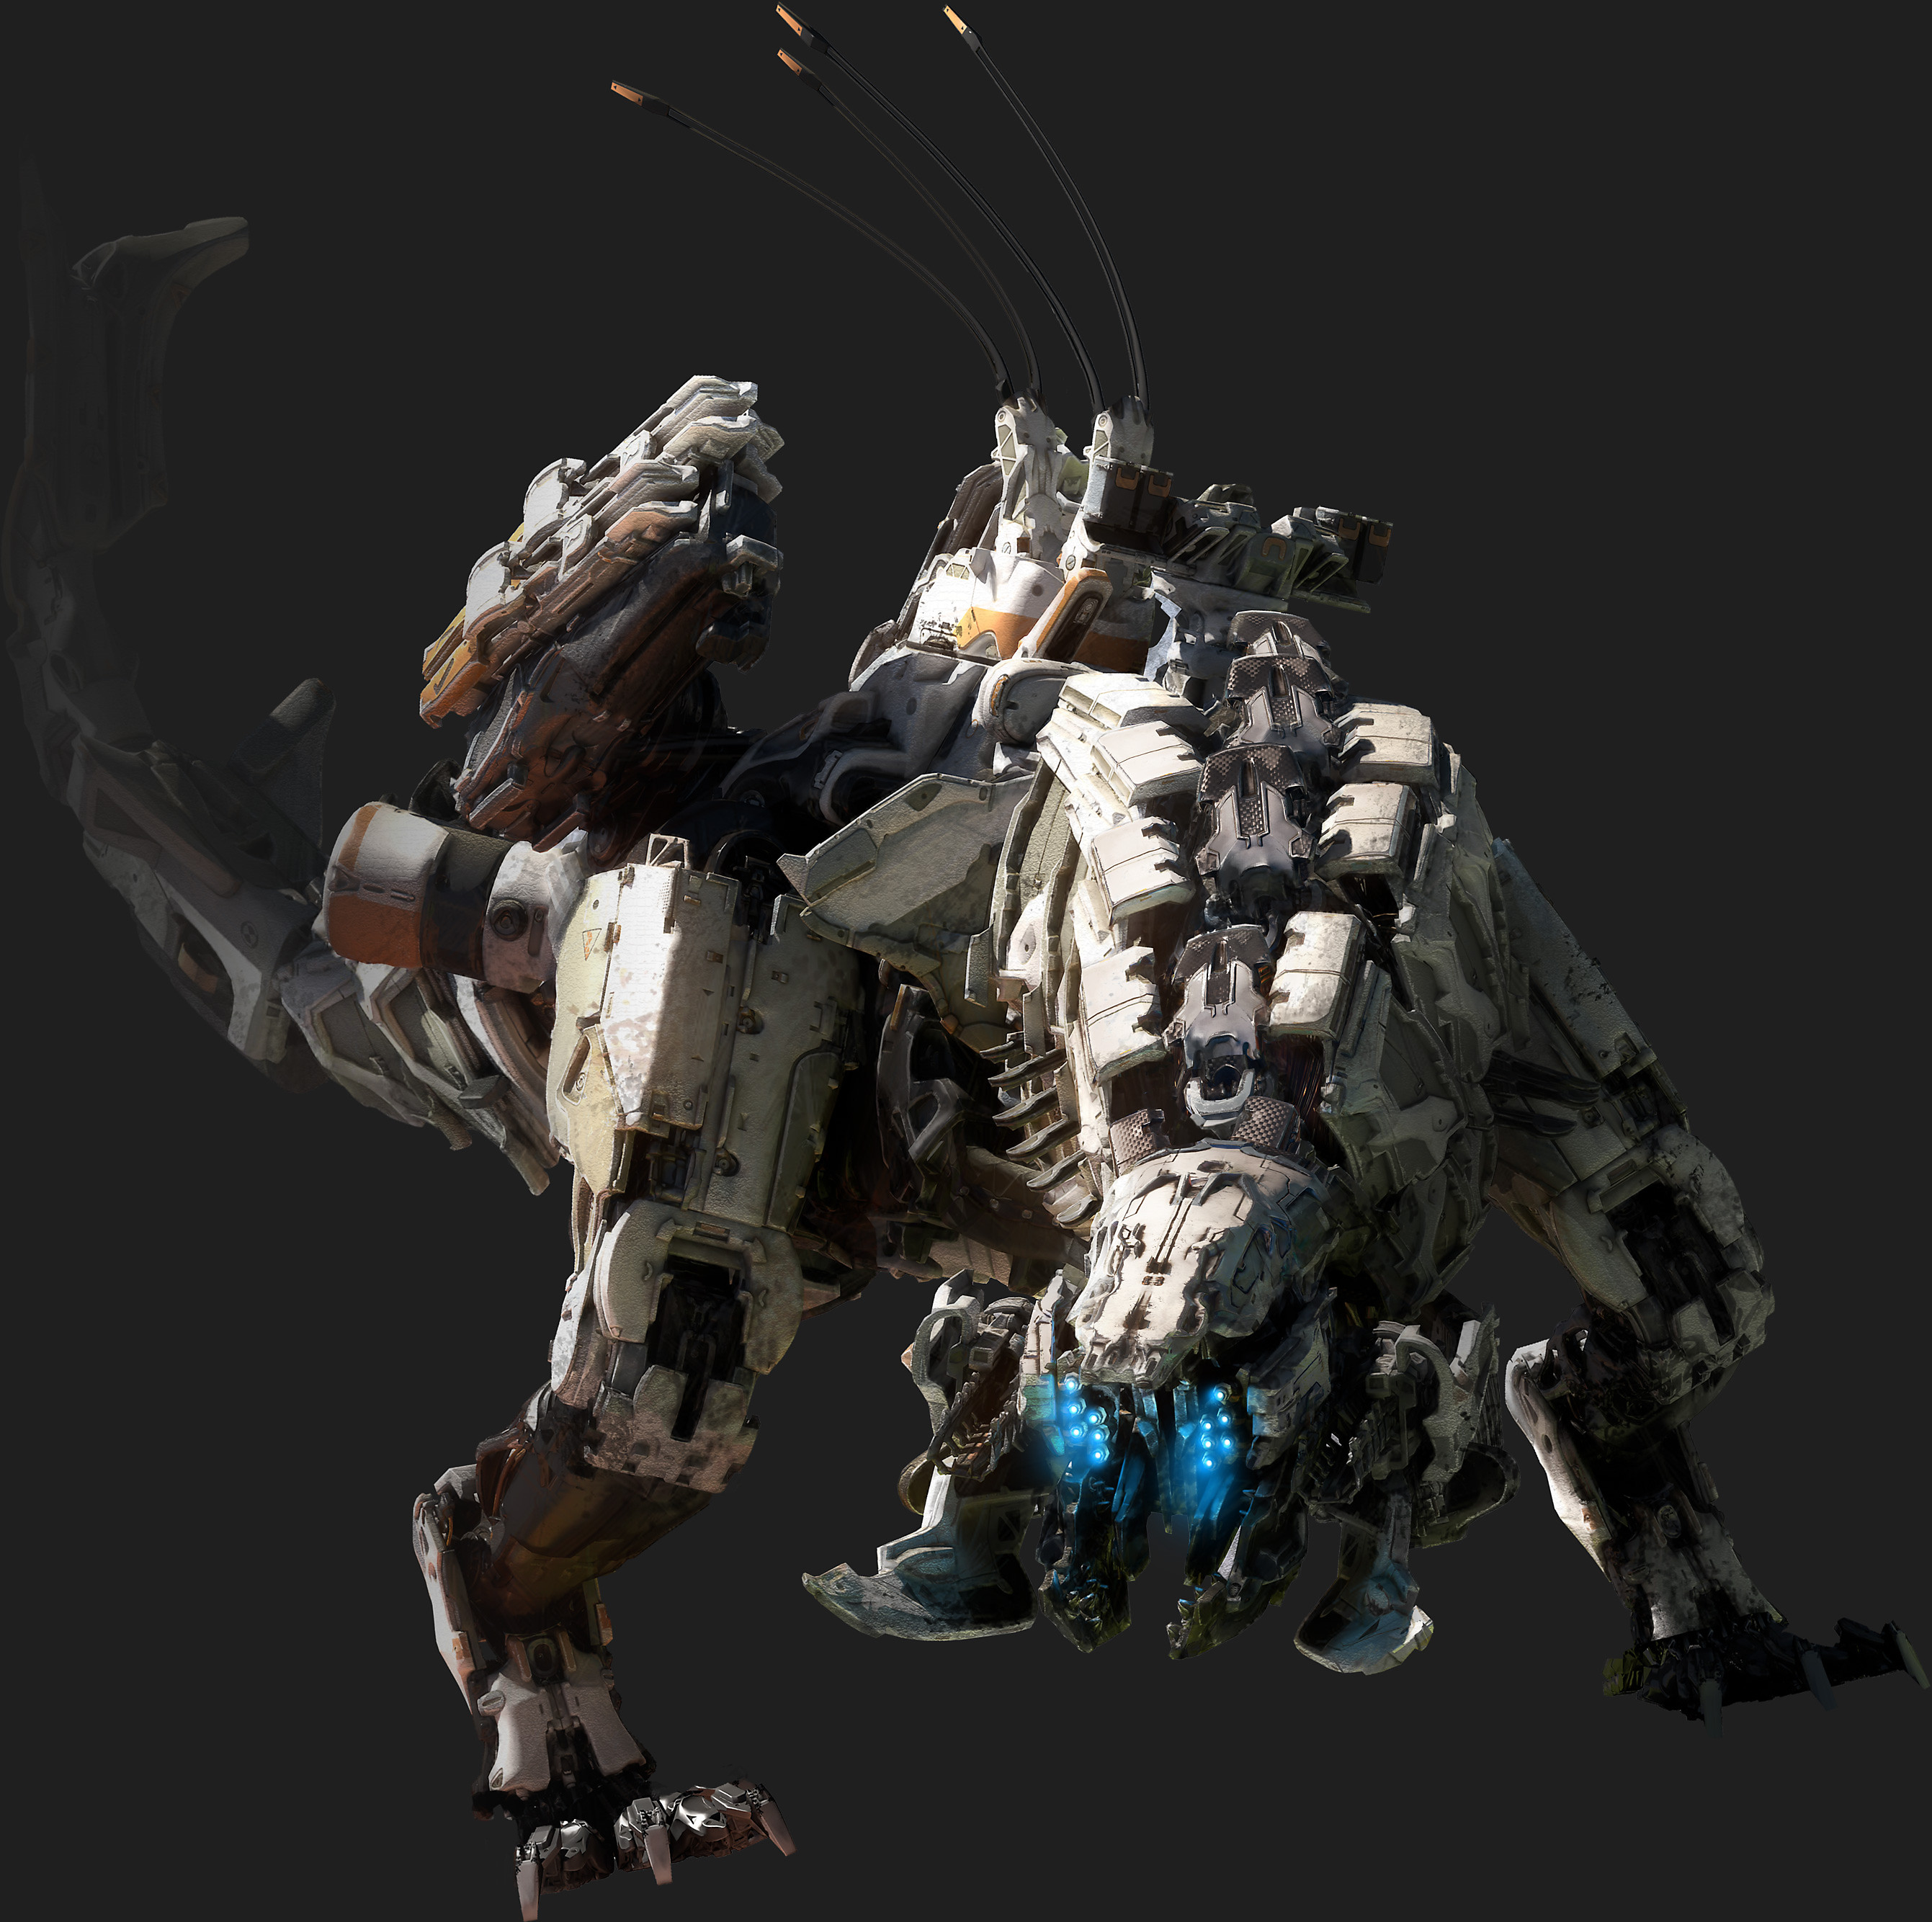 Horizon Zero Dawn - The Machines: Thunderjaw